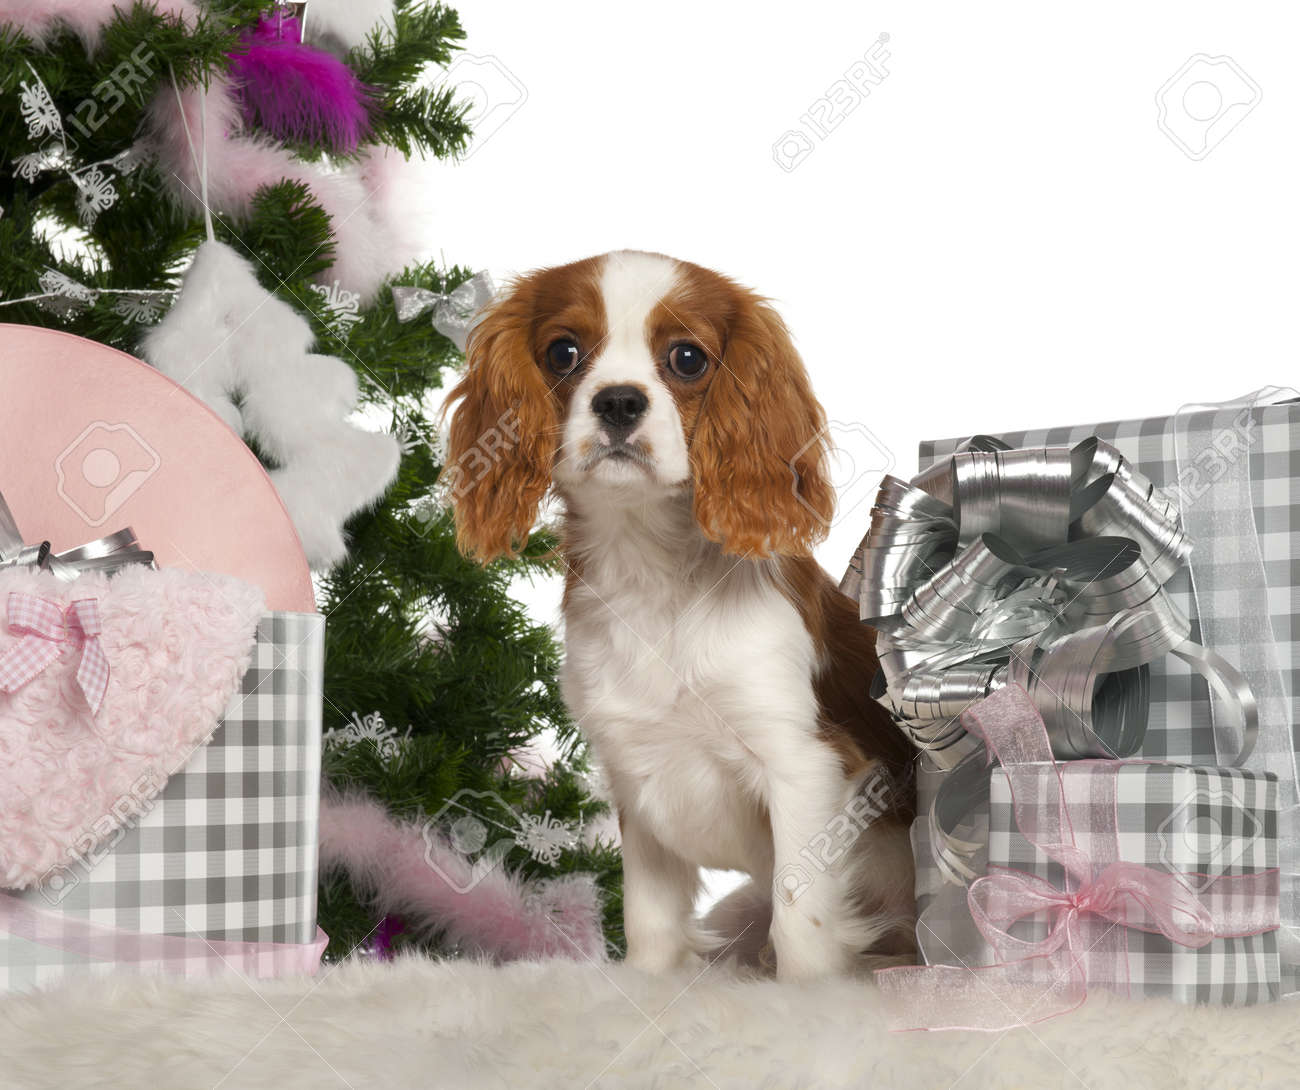 Cavalier King Charles Spaniel puppy, 6 months old, with Christmas tree and gifts in